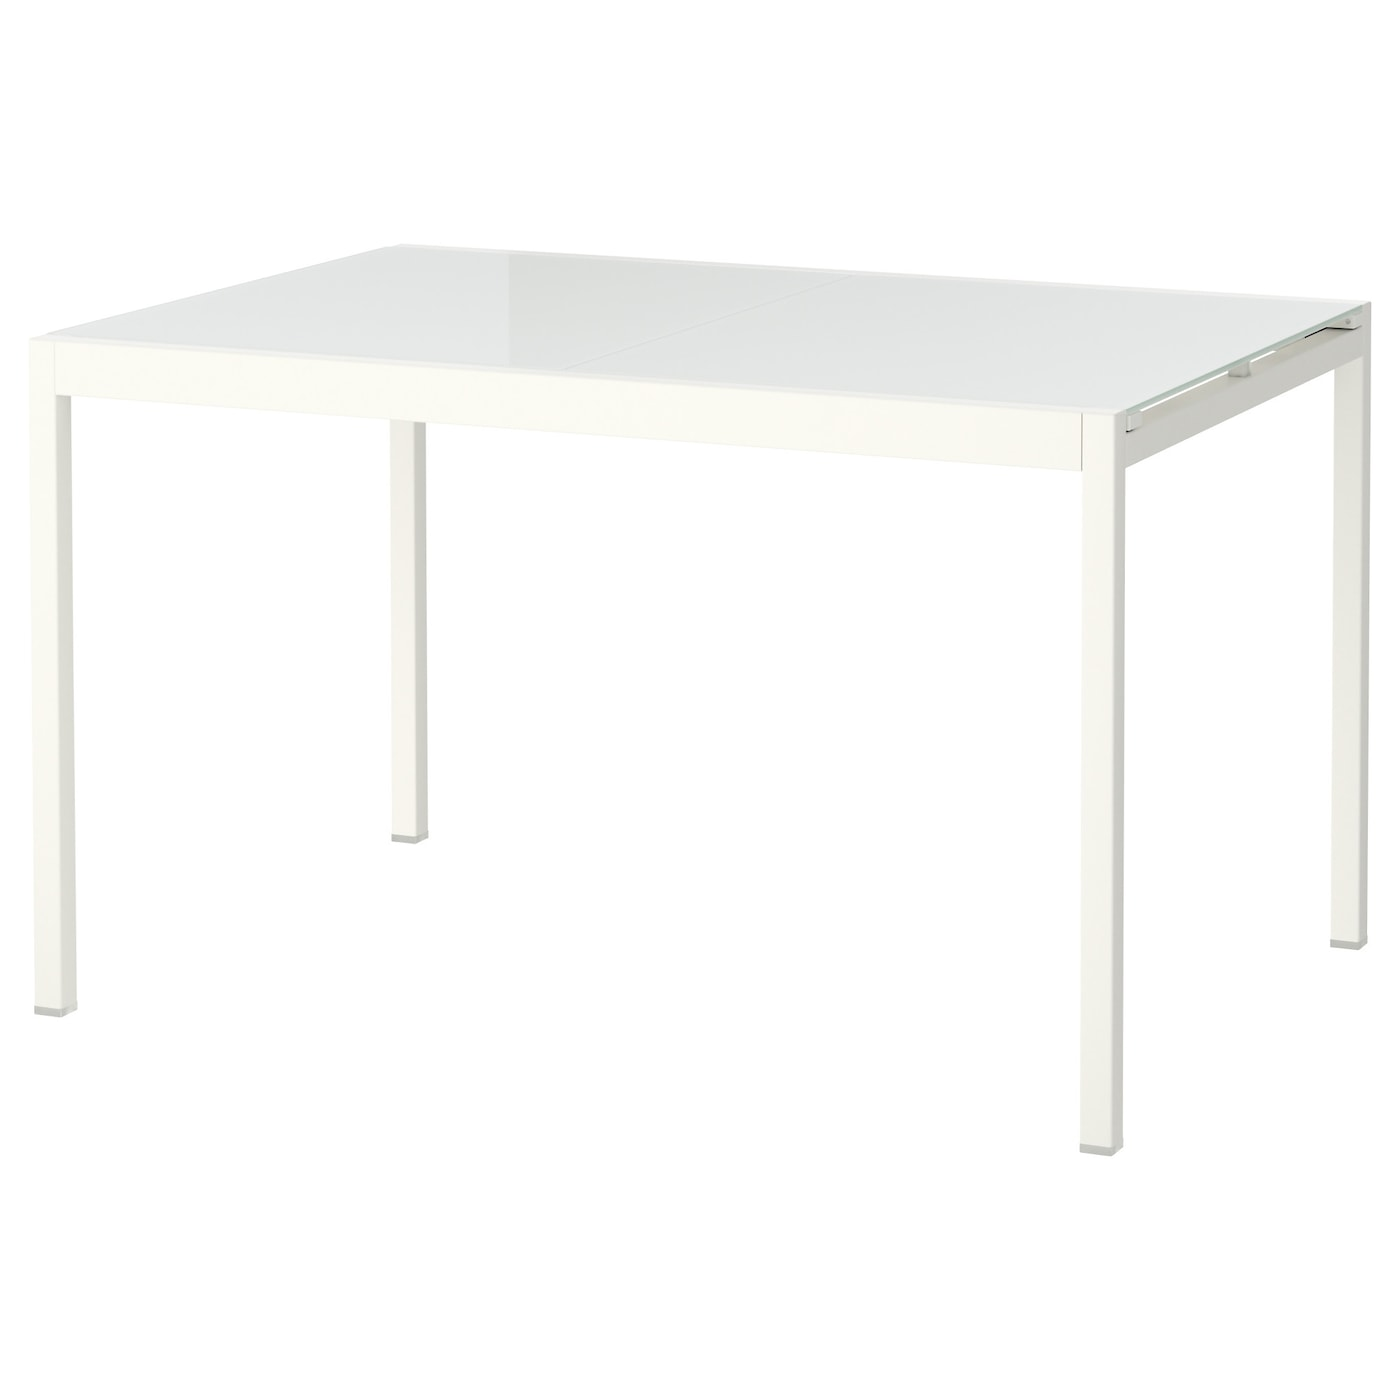 glivarp table extensible blanc 125 188x85 cm ikea. Black Bedroom Furniture Sets. Home Design Ideas